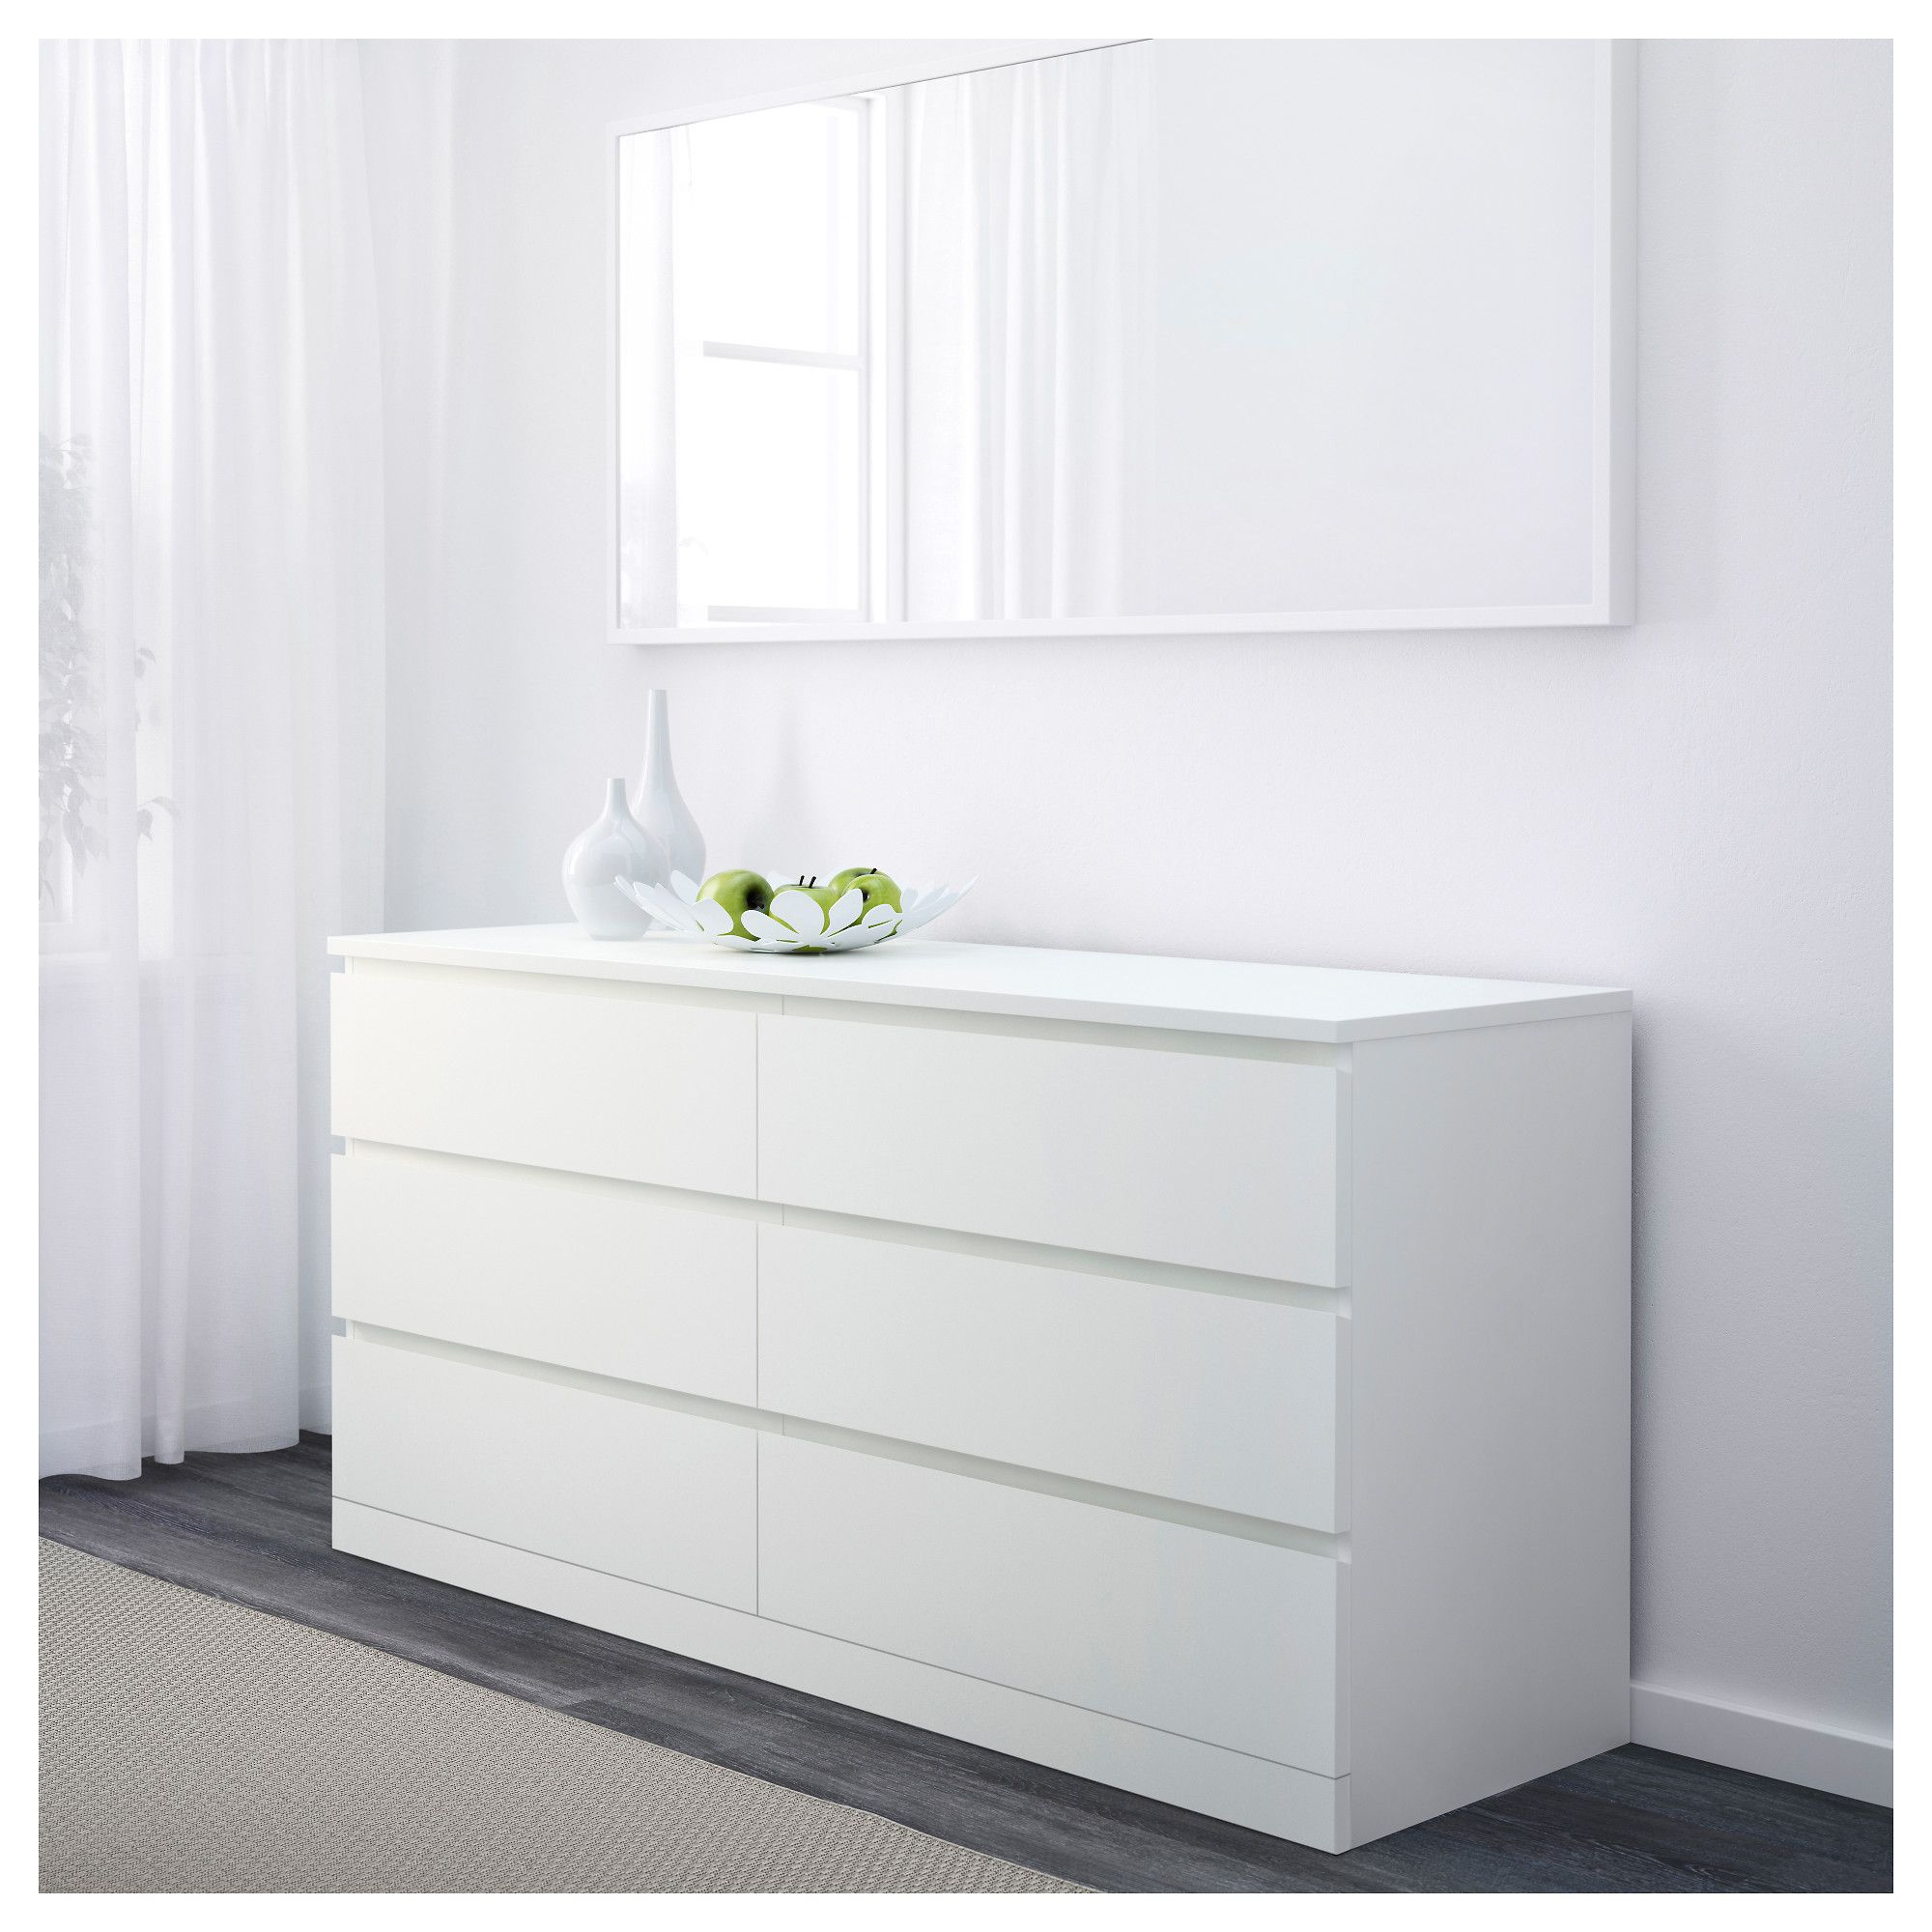 Malm 6 Drawer Dresser White 63x30 3 4 Ikea Ikea Malm Dresser Bedroom Chest Of Drawers White Bedroom Furniture